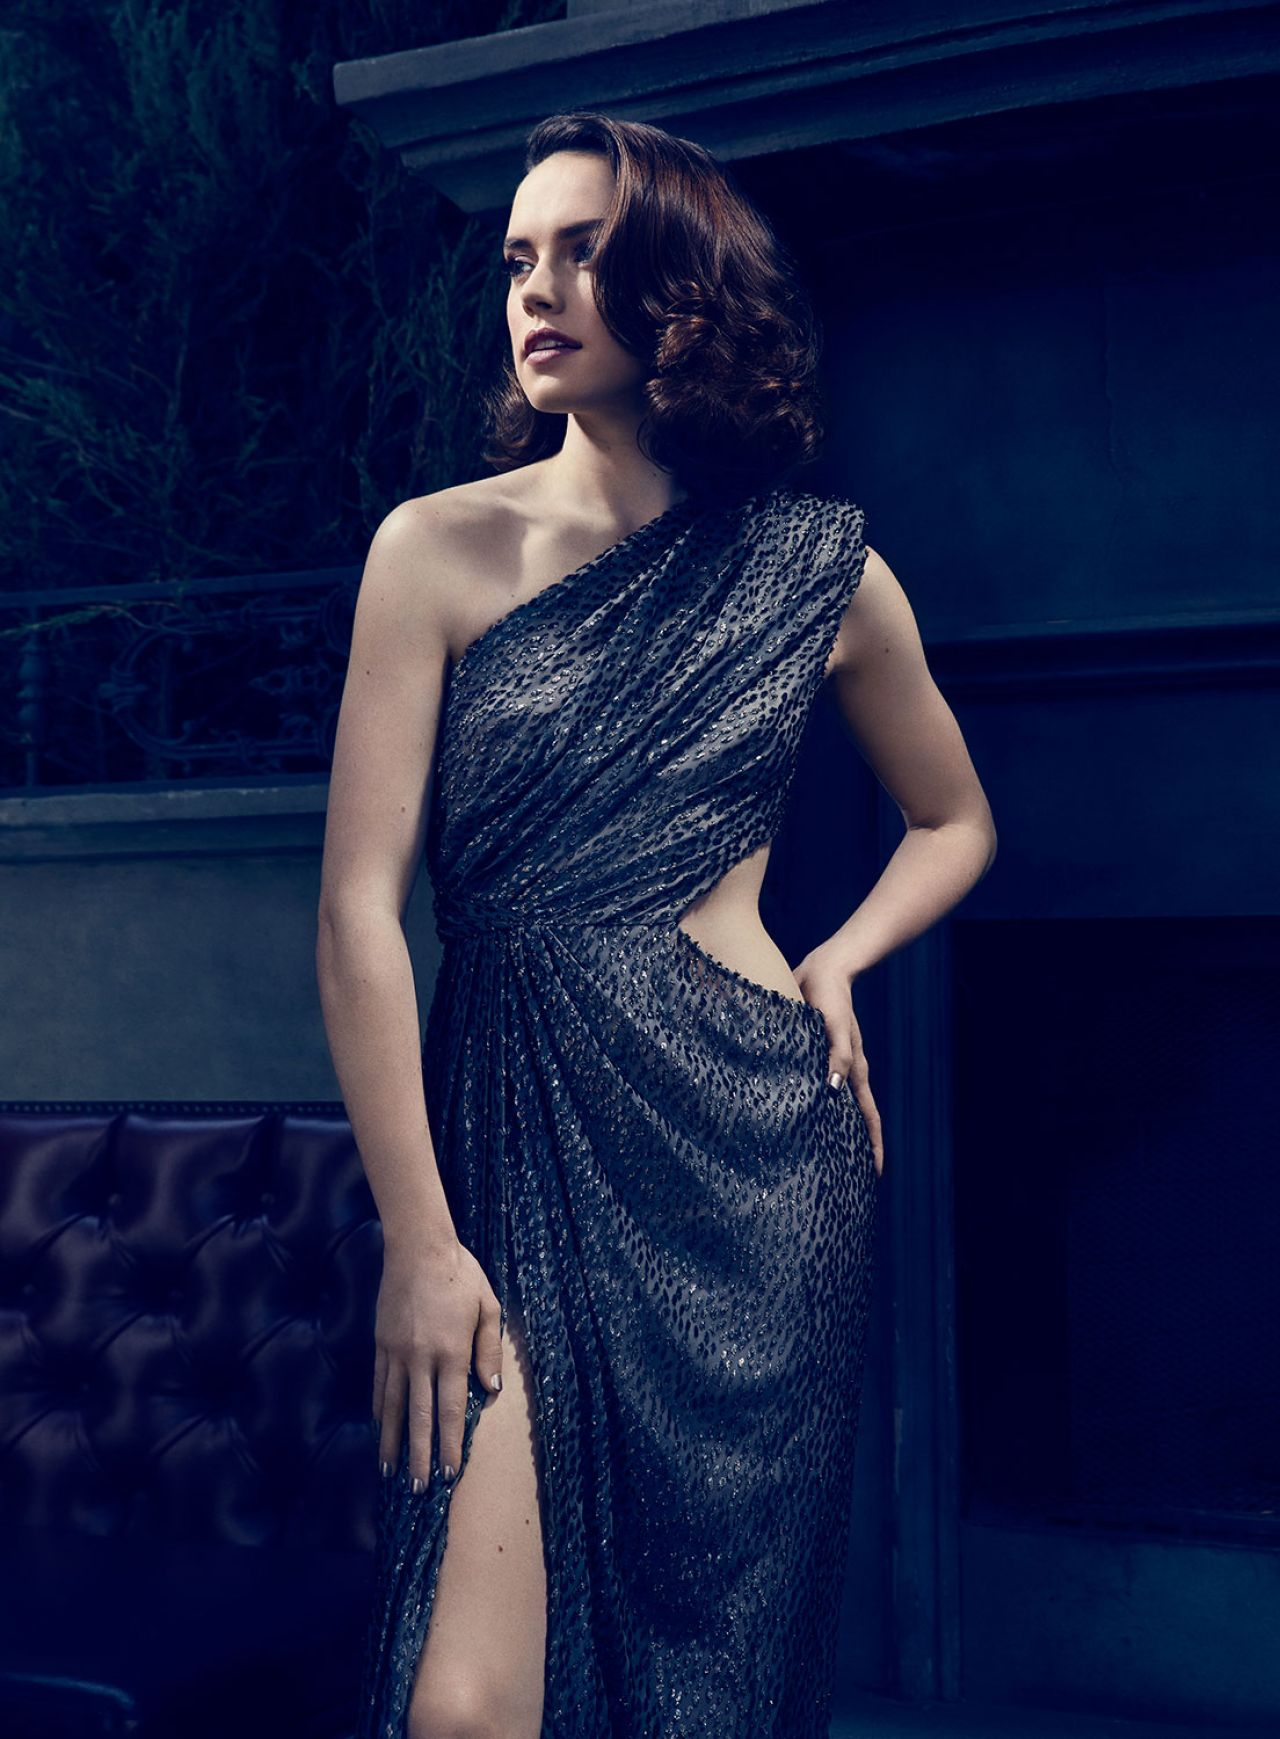 Favorite Images of Rey  Daisy-ridley-photoshoot-for-the-hollywood-reporter-november-2015-_5